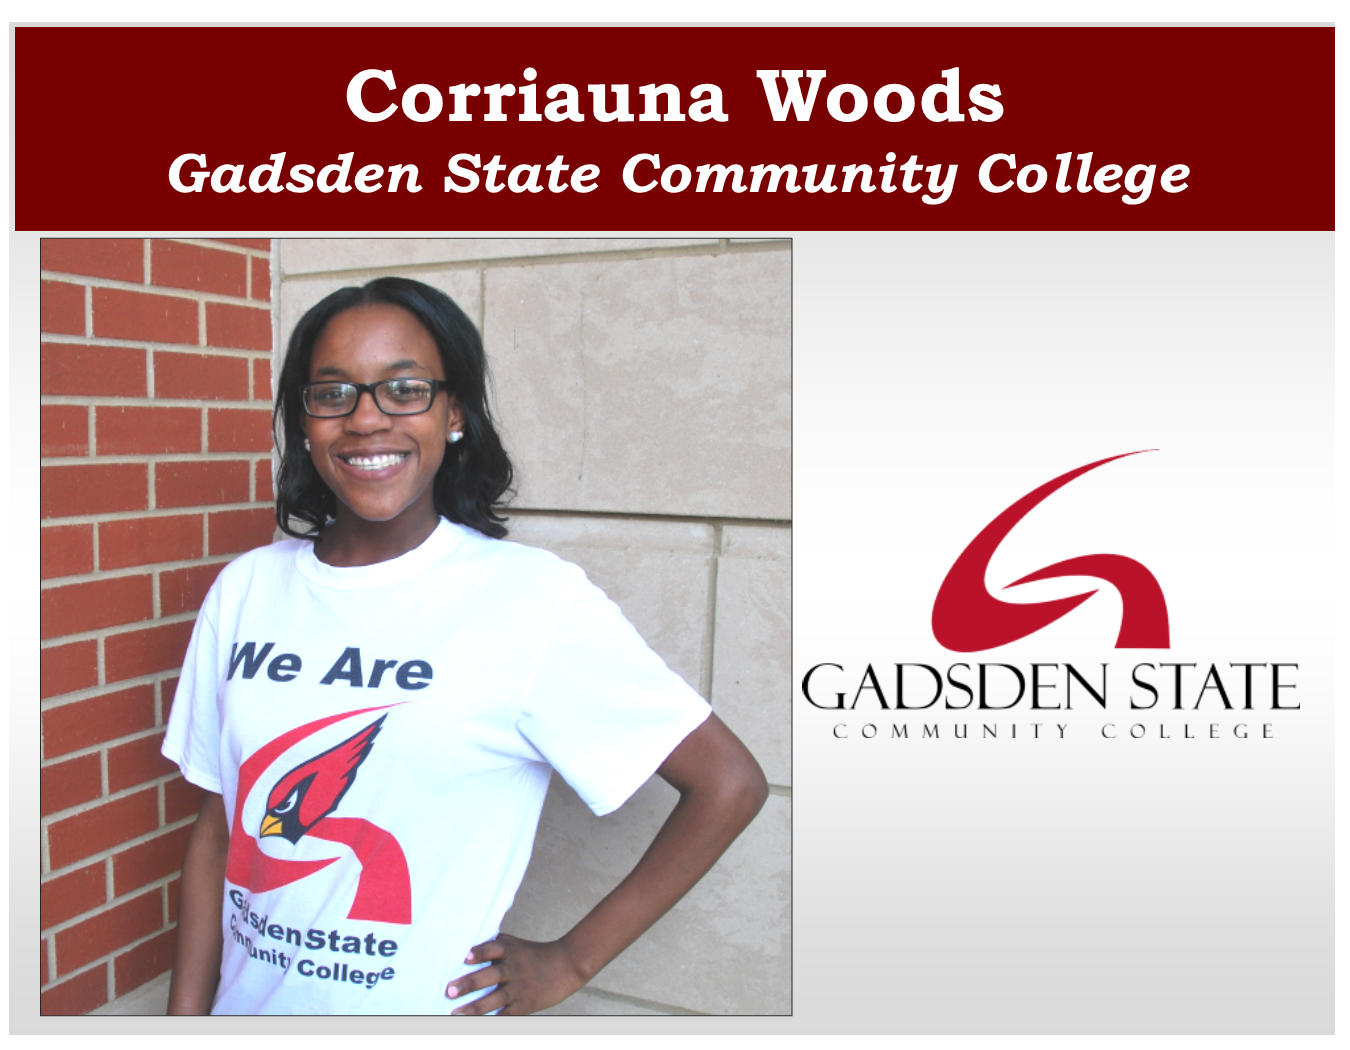 Corriauna Woods